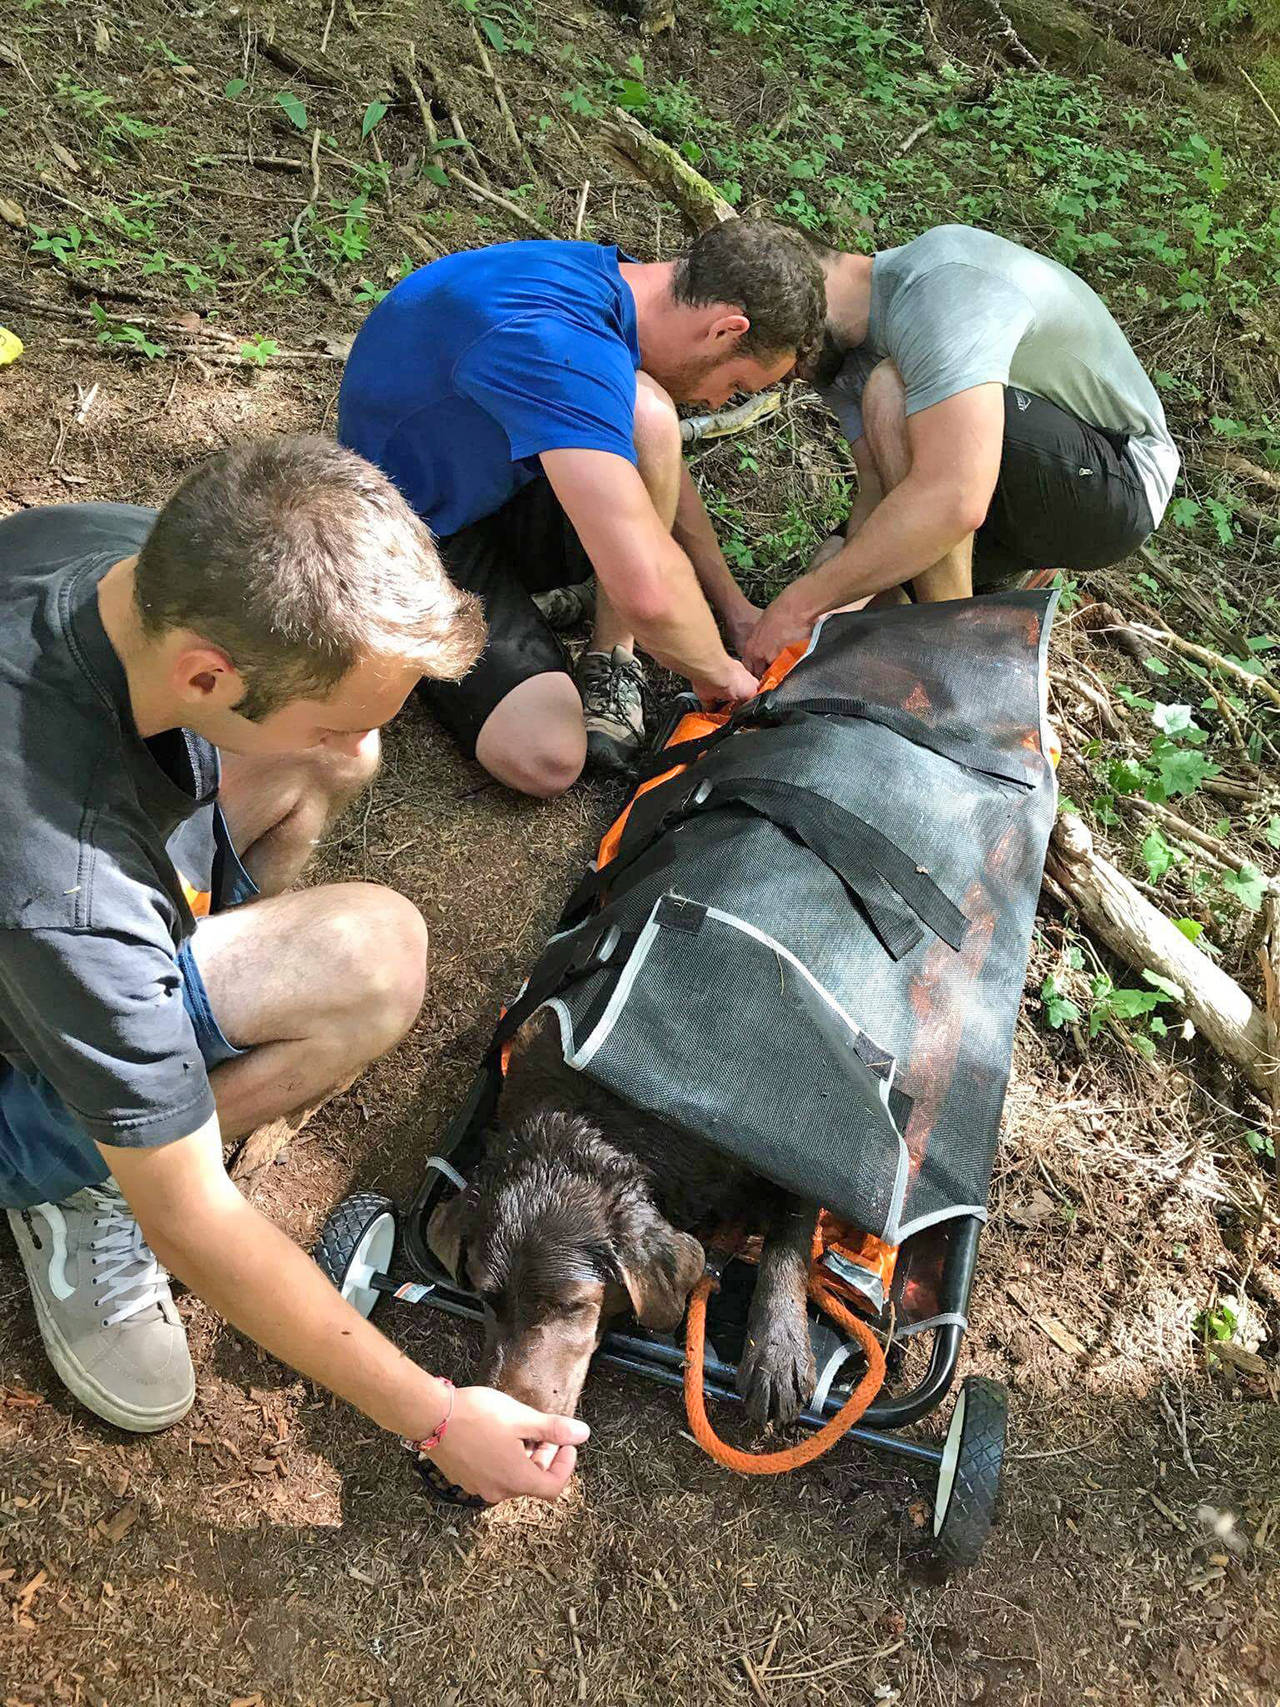 Online hiking club comes together to rescue injured dog near Chilliwack Lake